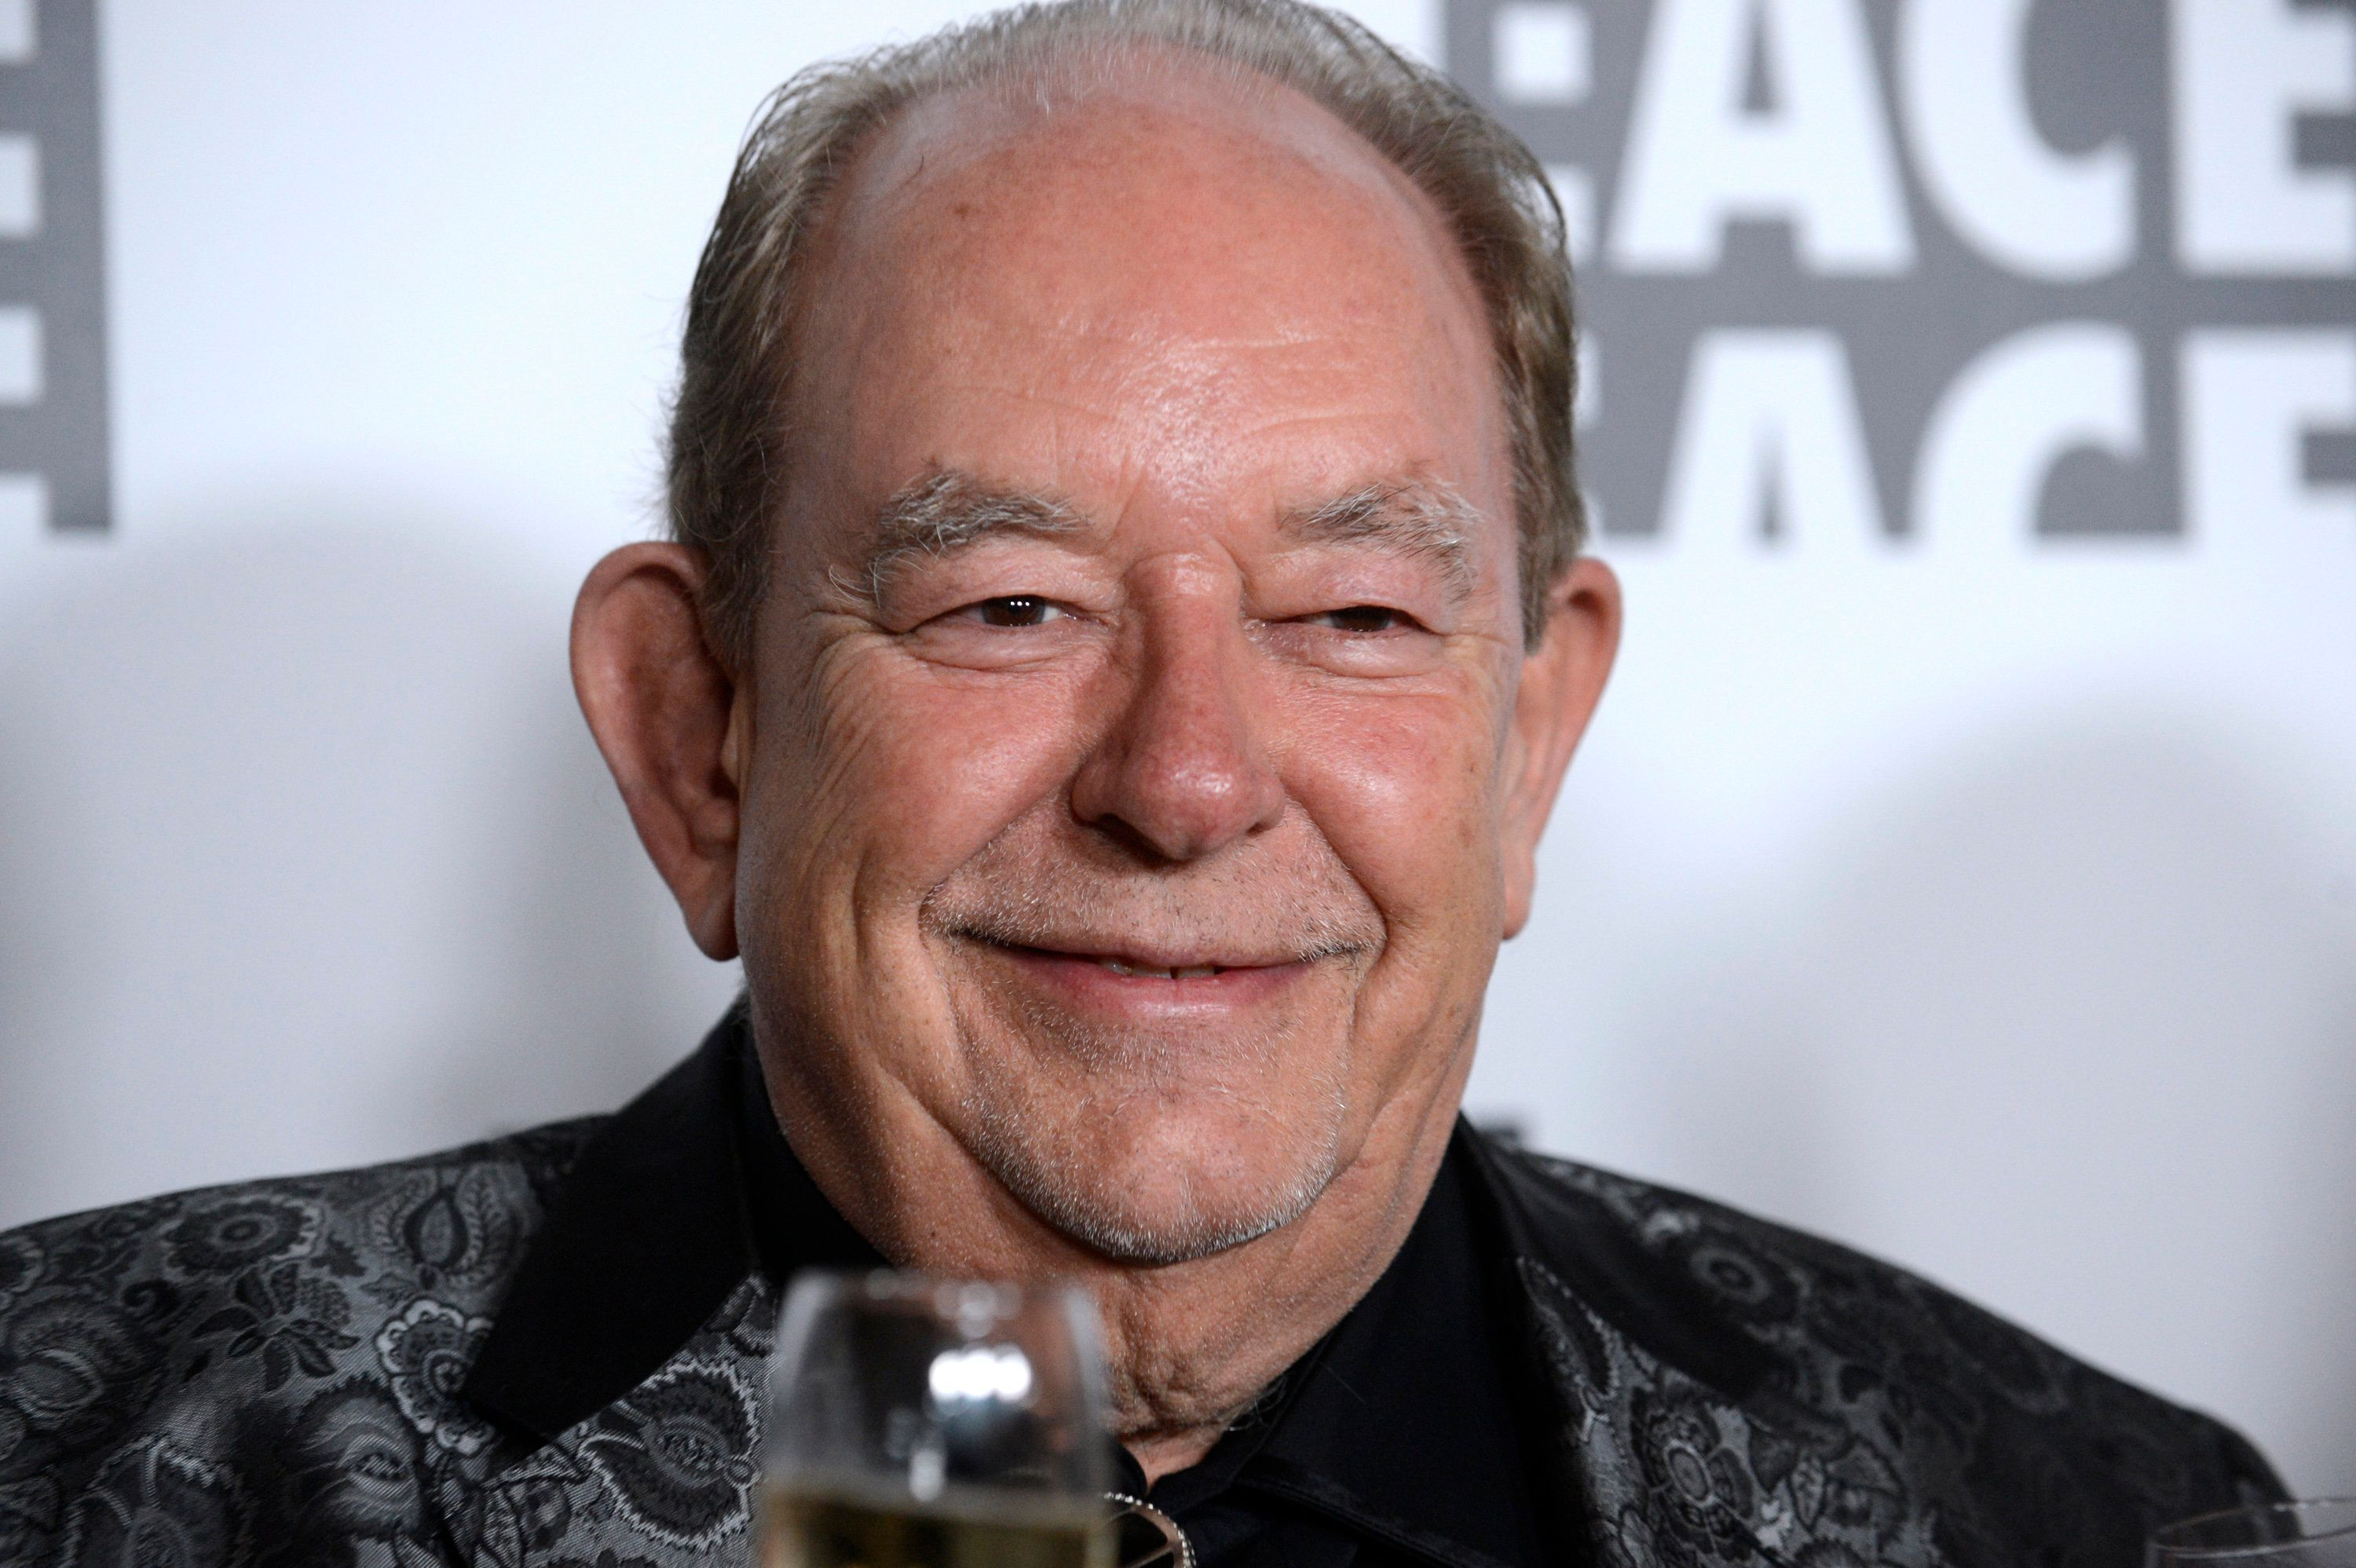 Robin Leach, 'Lifestyles Of The Rich And Famous' Host, Dead At